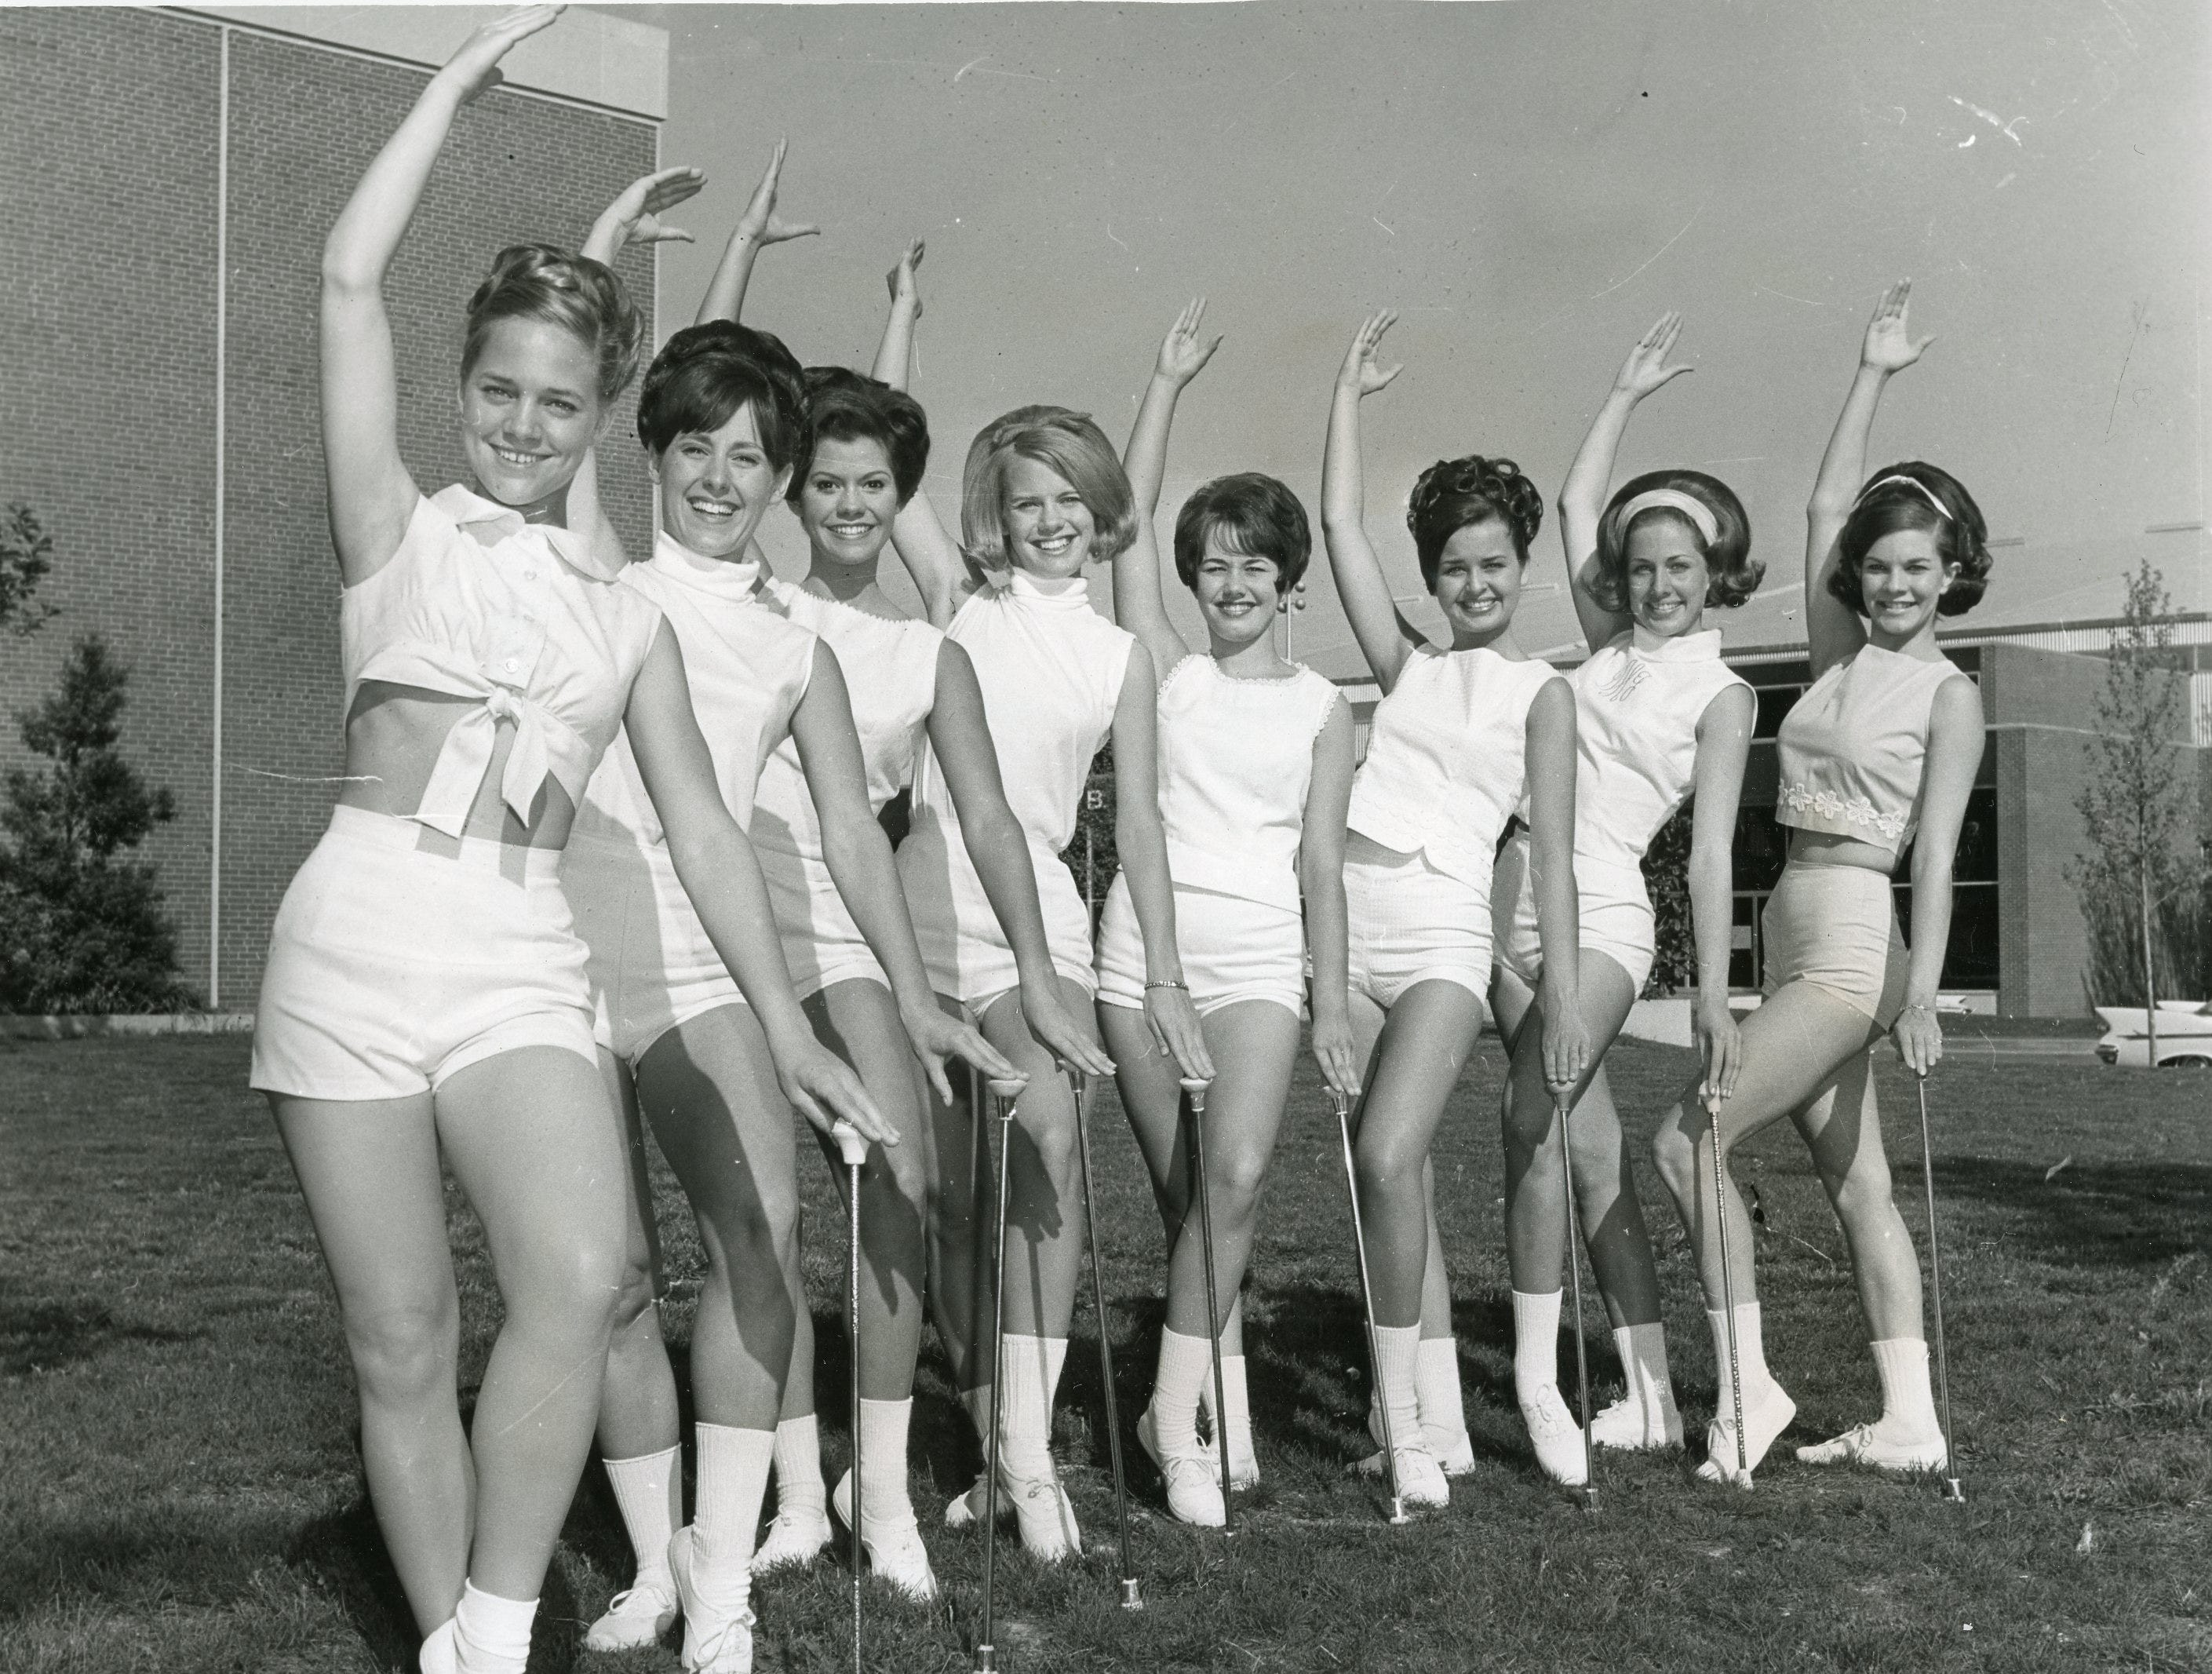 The Pride's newest majorettes, April, 1969 included: Susan Douglass, Pete Payne, Janet Guthrie, Mary Luallen, Karen Crumm, Gail Love, Debbie Holliday and Connie Phillips.